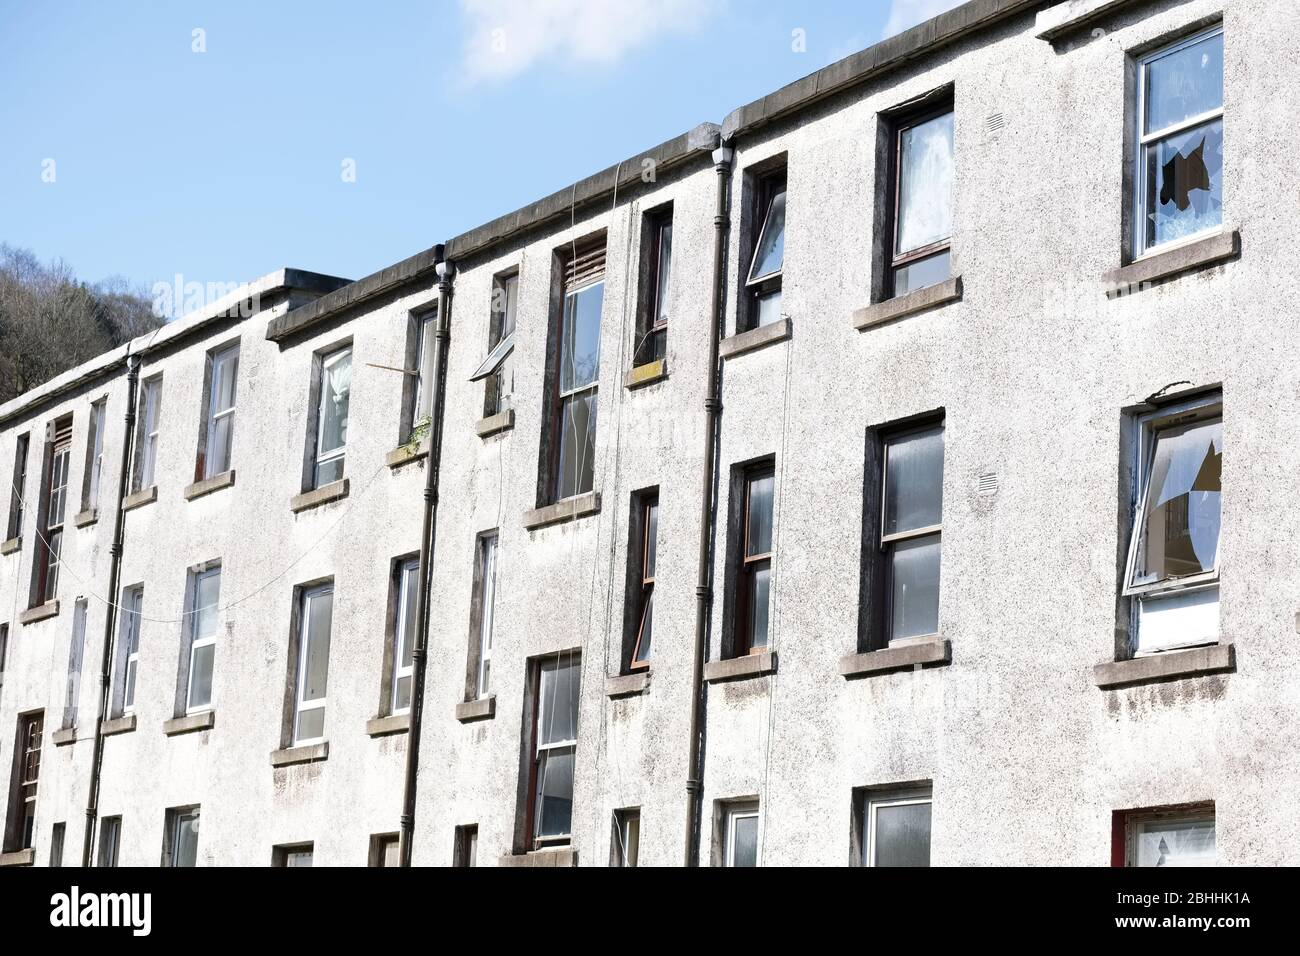 Derelict council house in poor housing estate slum with many social welfare issues in Port Glasgow Stock Photo